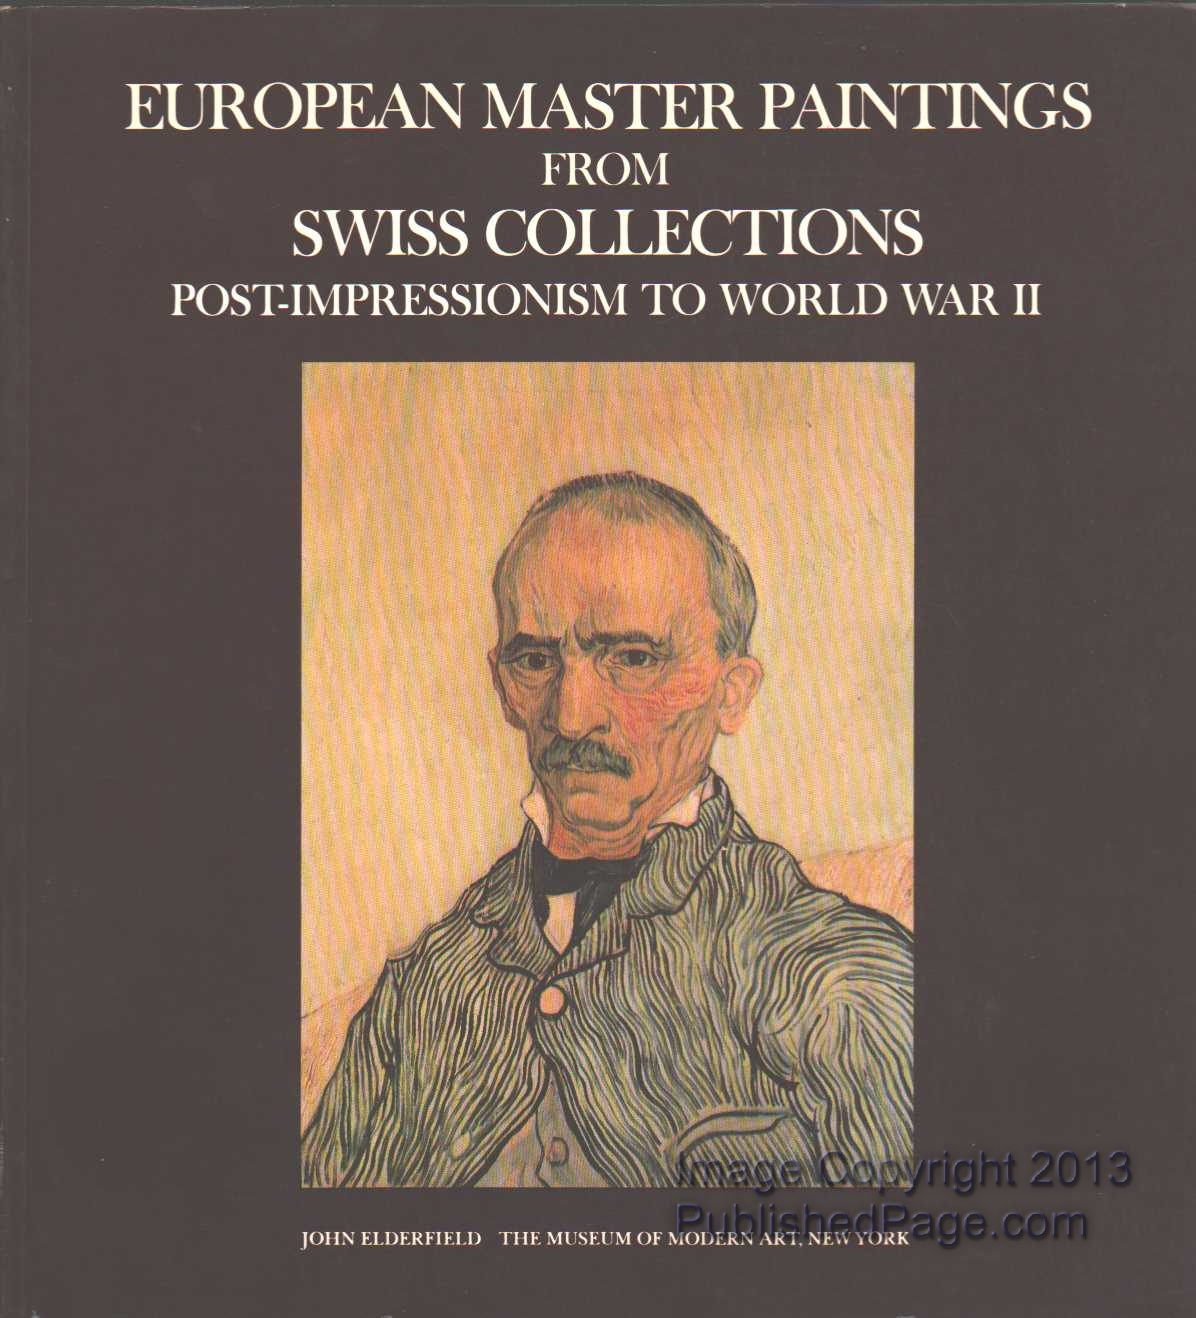 Image for European Master Paintings from Swiss Collections: Post-Impressionism to World War II